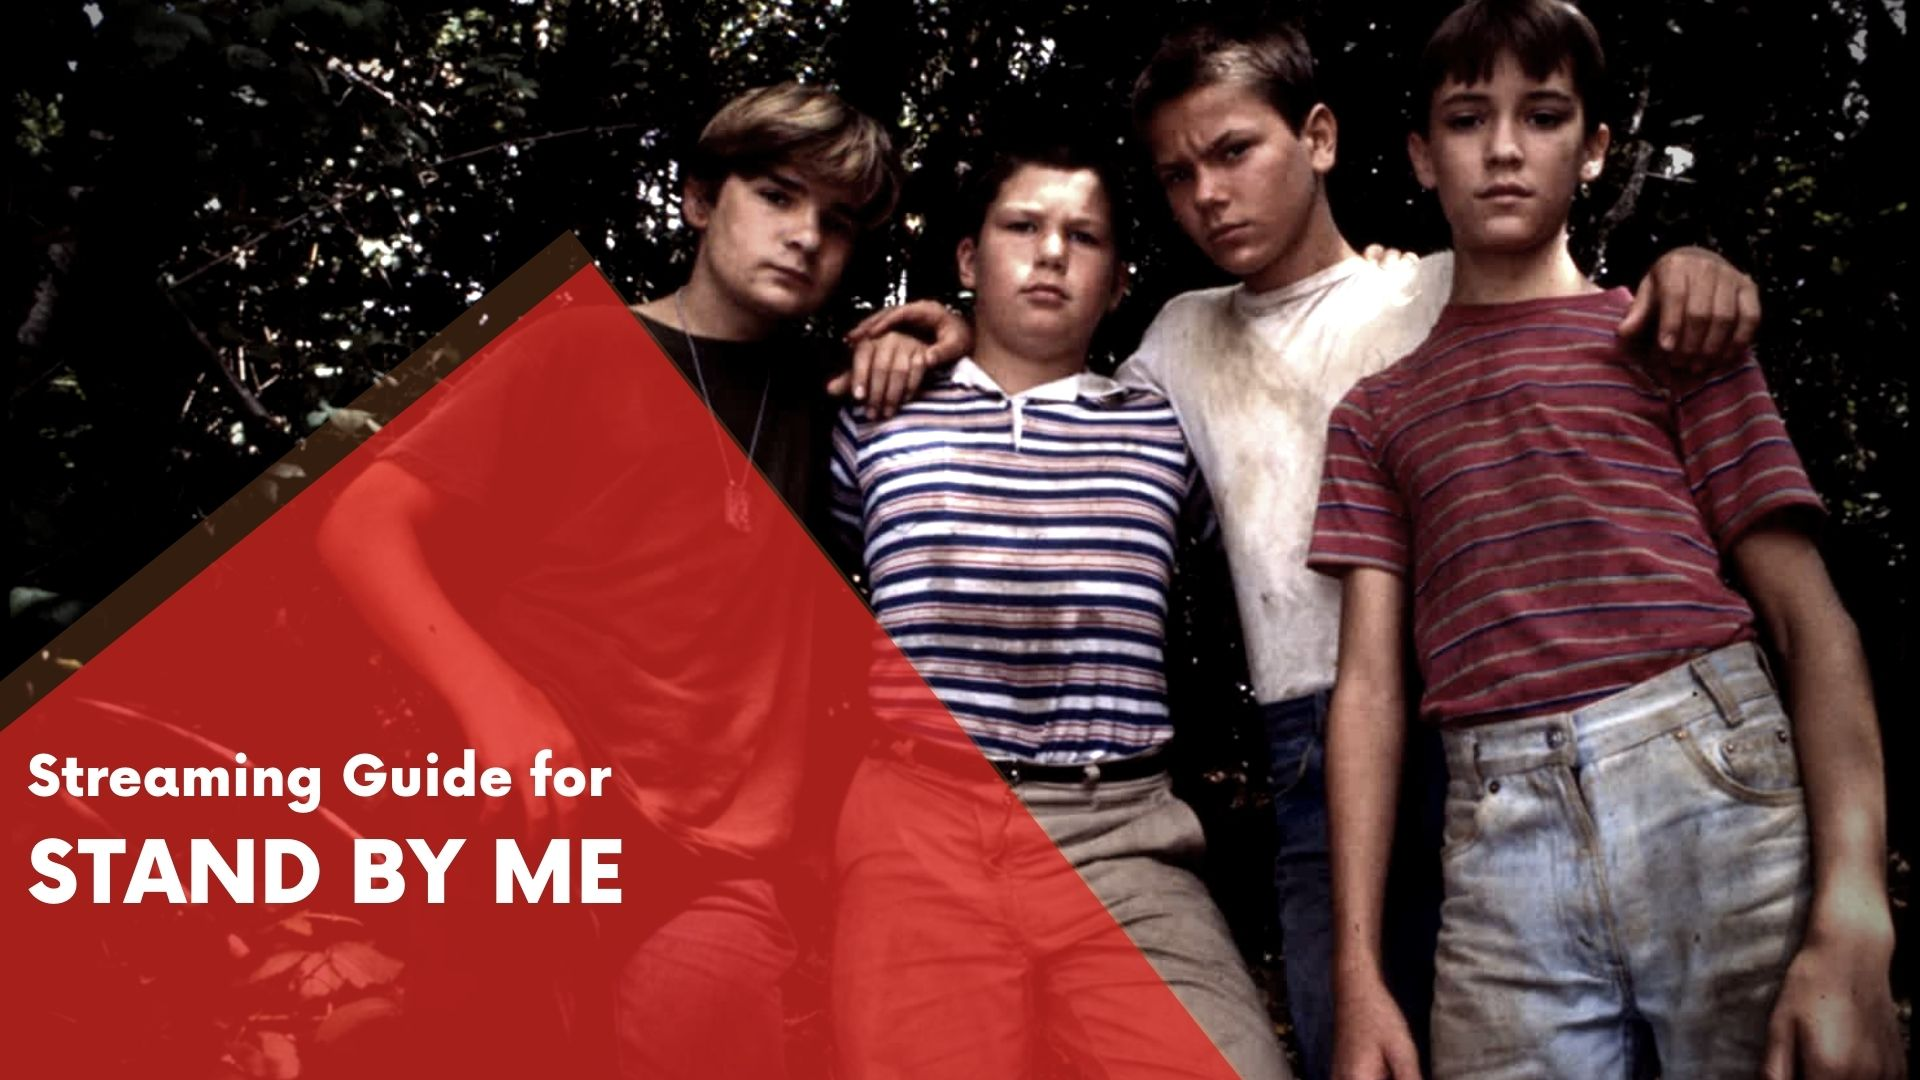 Answering if Stand By Me is available on Hulu